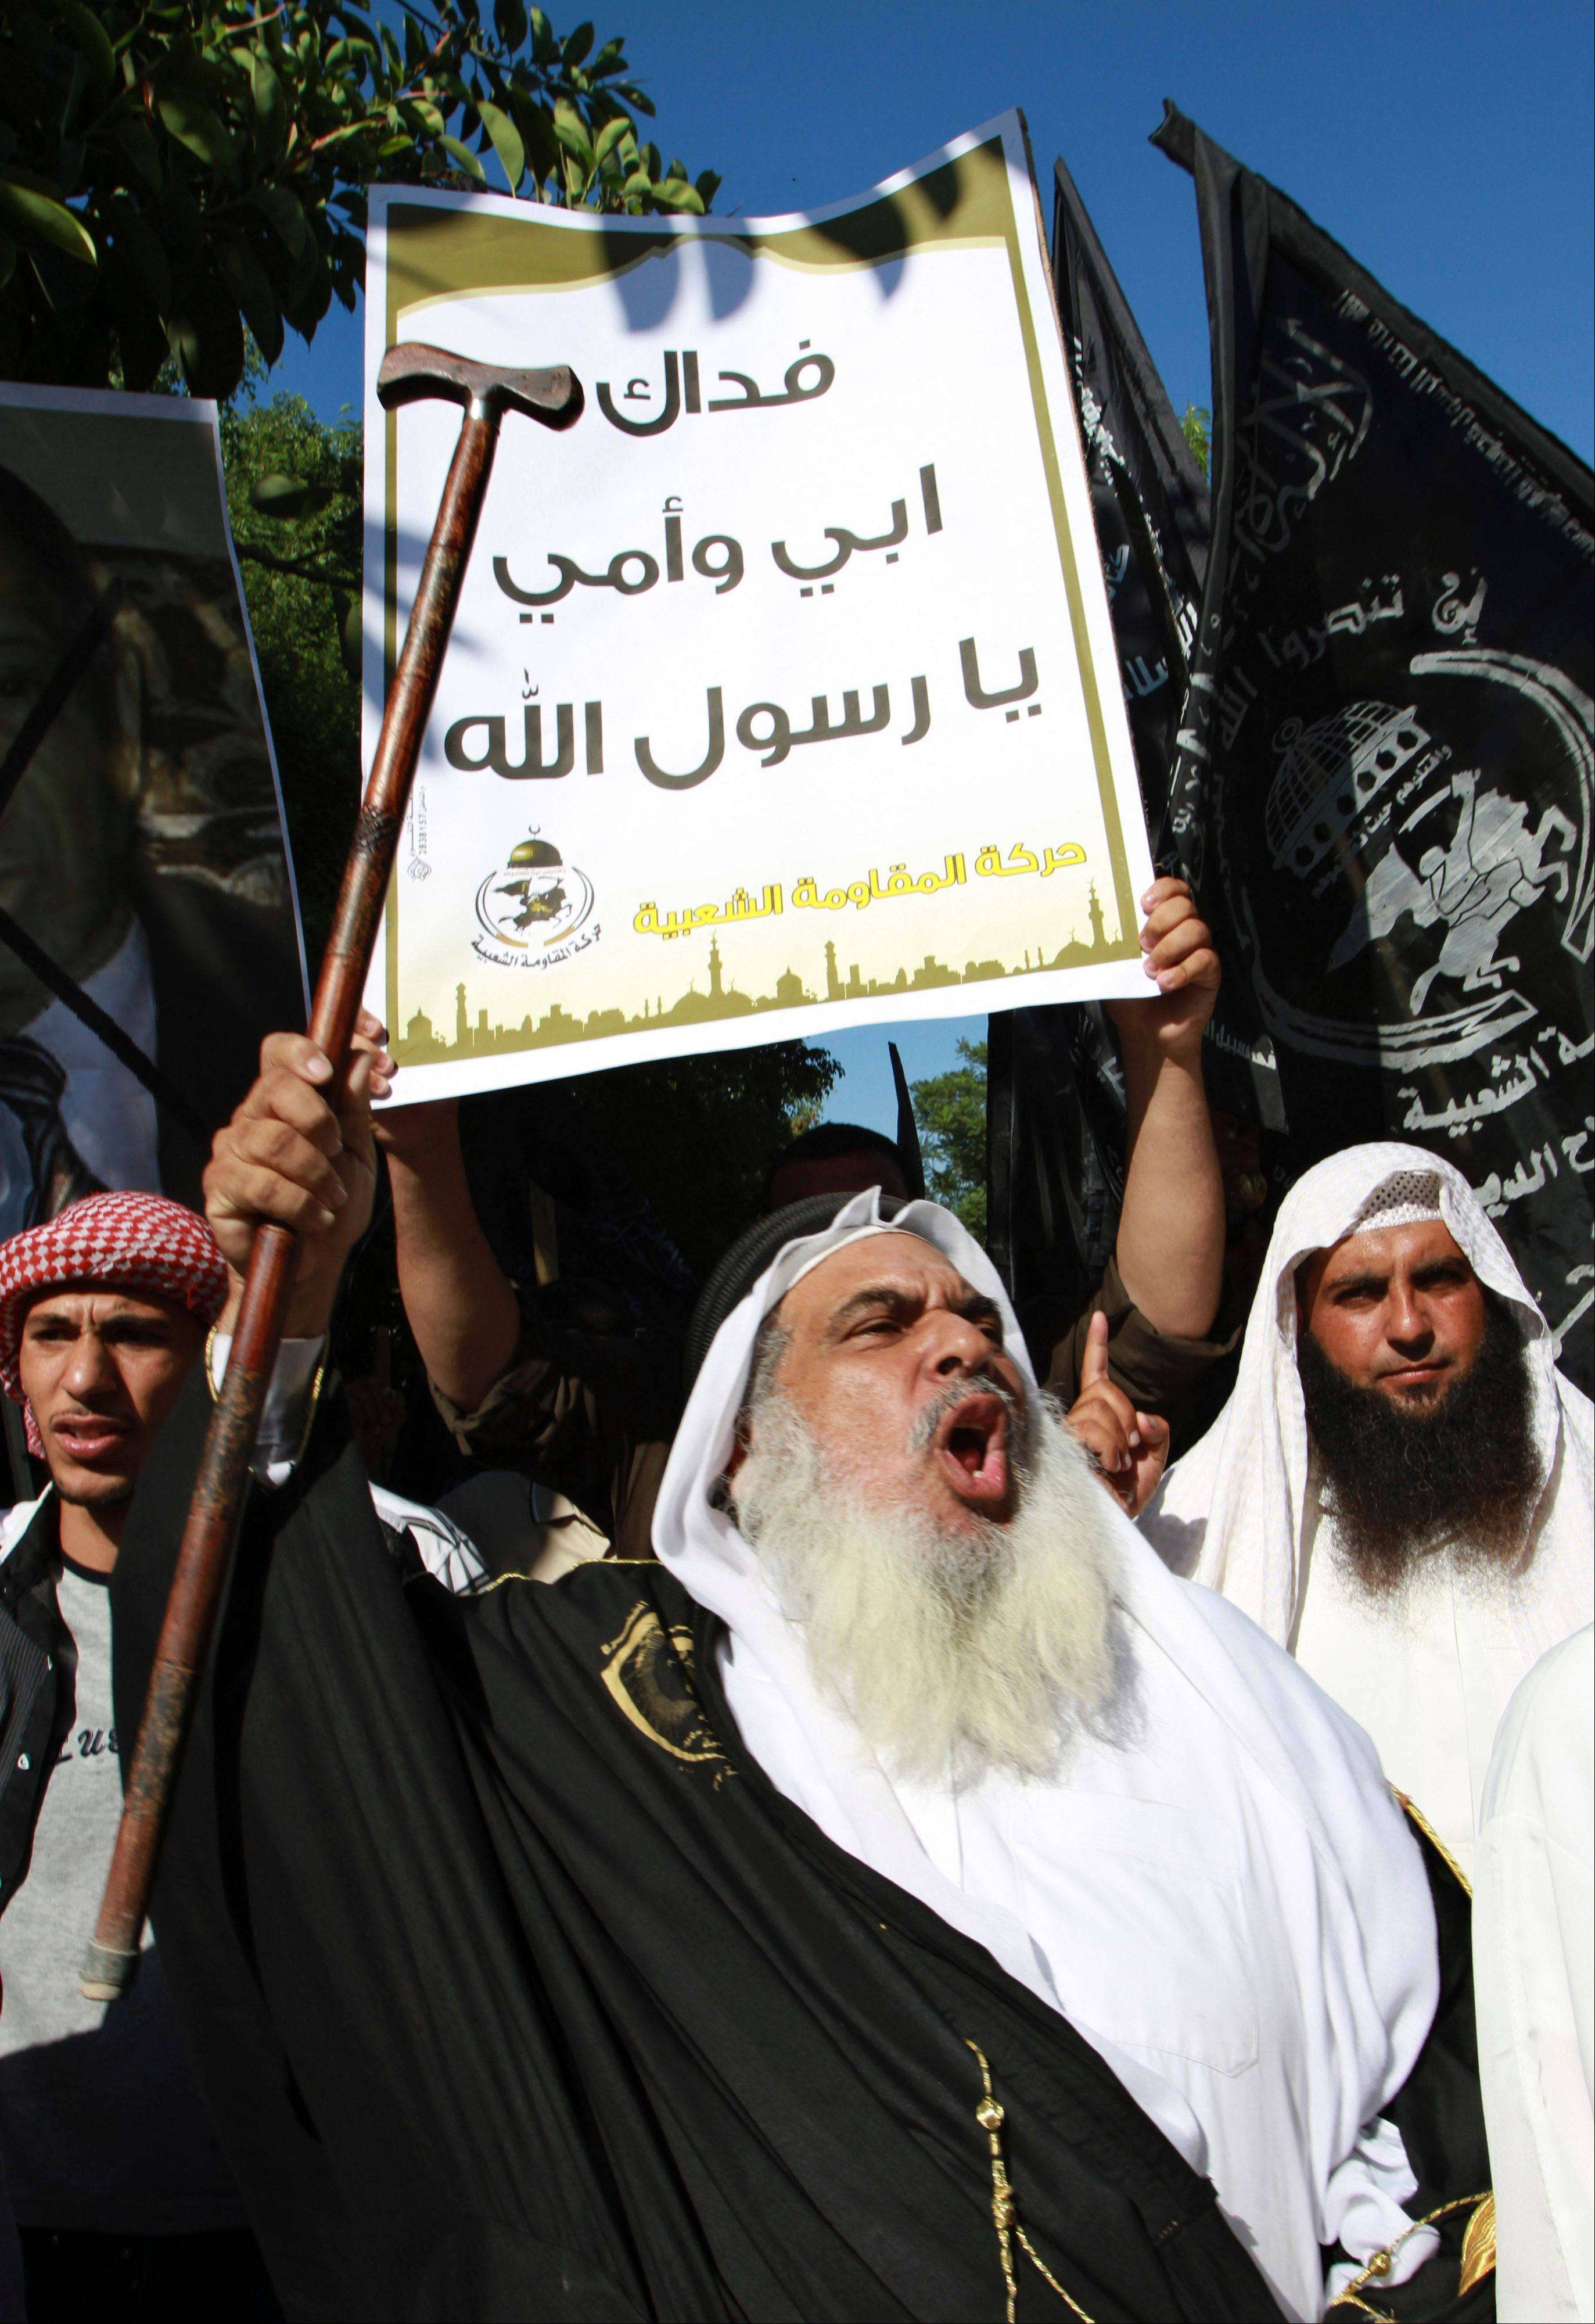 "Palestinians protest against the movie, ""Innocence of Muslims,"" near the United Nations office in Gaza City, Wednesday, Sept. 12, 2012. Muslim anger over perceived Western insults to Islam has exploded several times, most recently in Tuesday's attacks against U.S. diplomatic posts in the Middle East in which U.S. ambassador to Libya Chris Stevens and three other Americans were killed. The banner reads in Arabic ""you are more dear than my father and mother my beloved prophet Mohammed."""